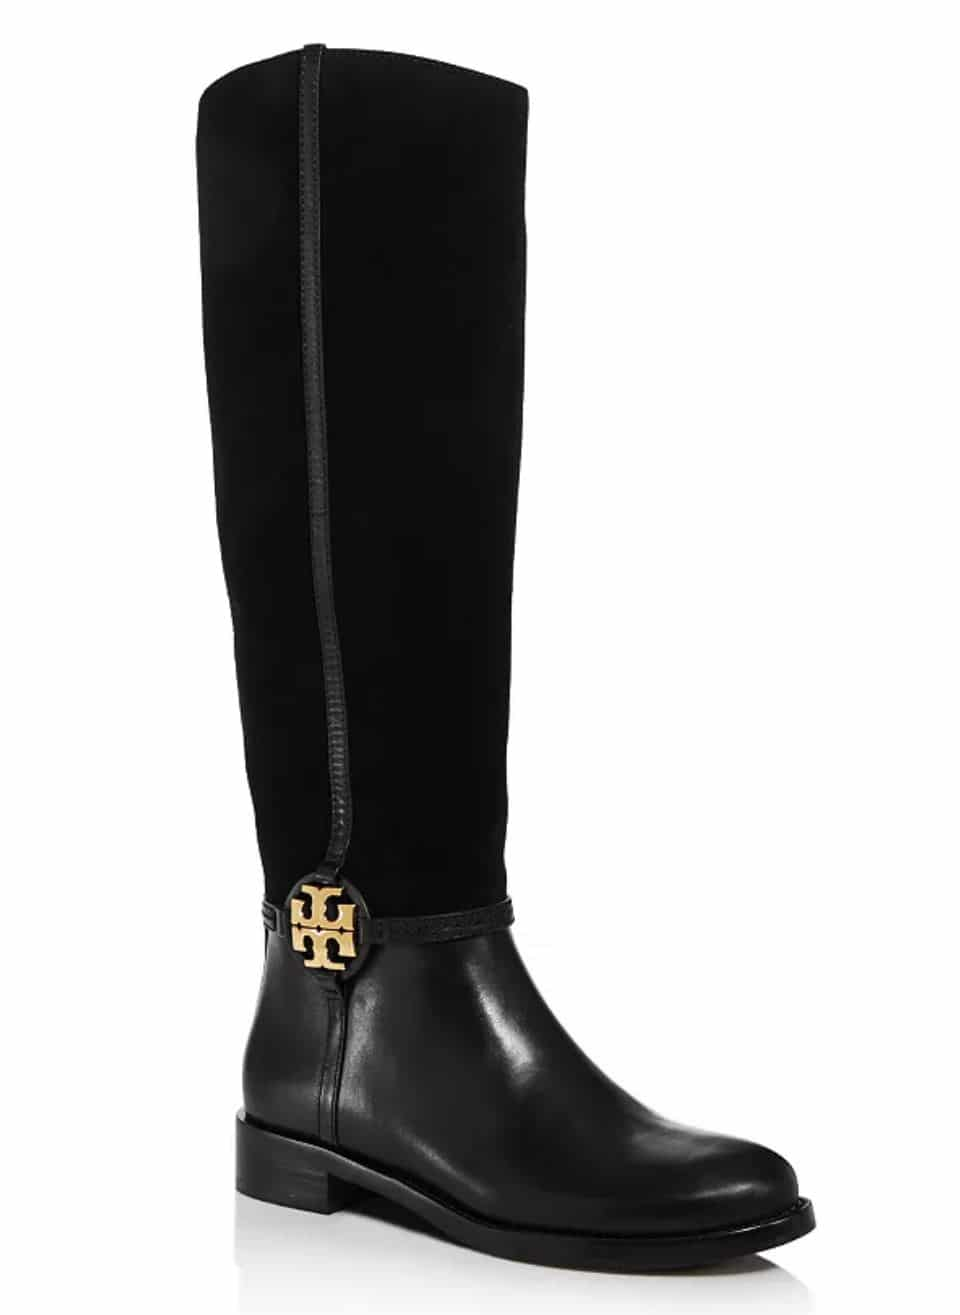 Tory Burch Tall Boots   Today's Fashion